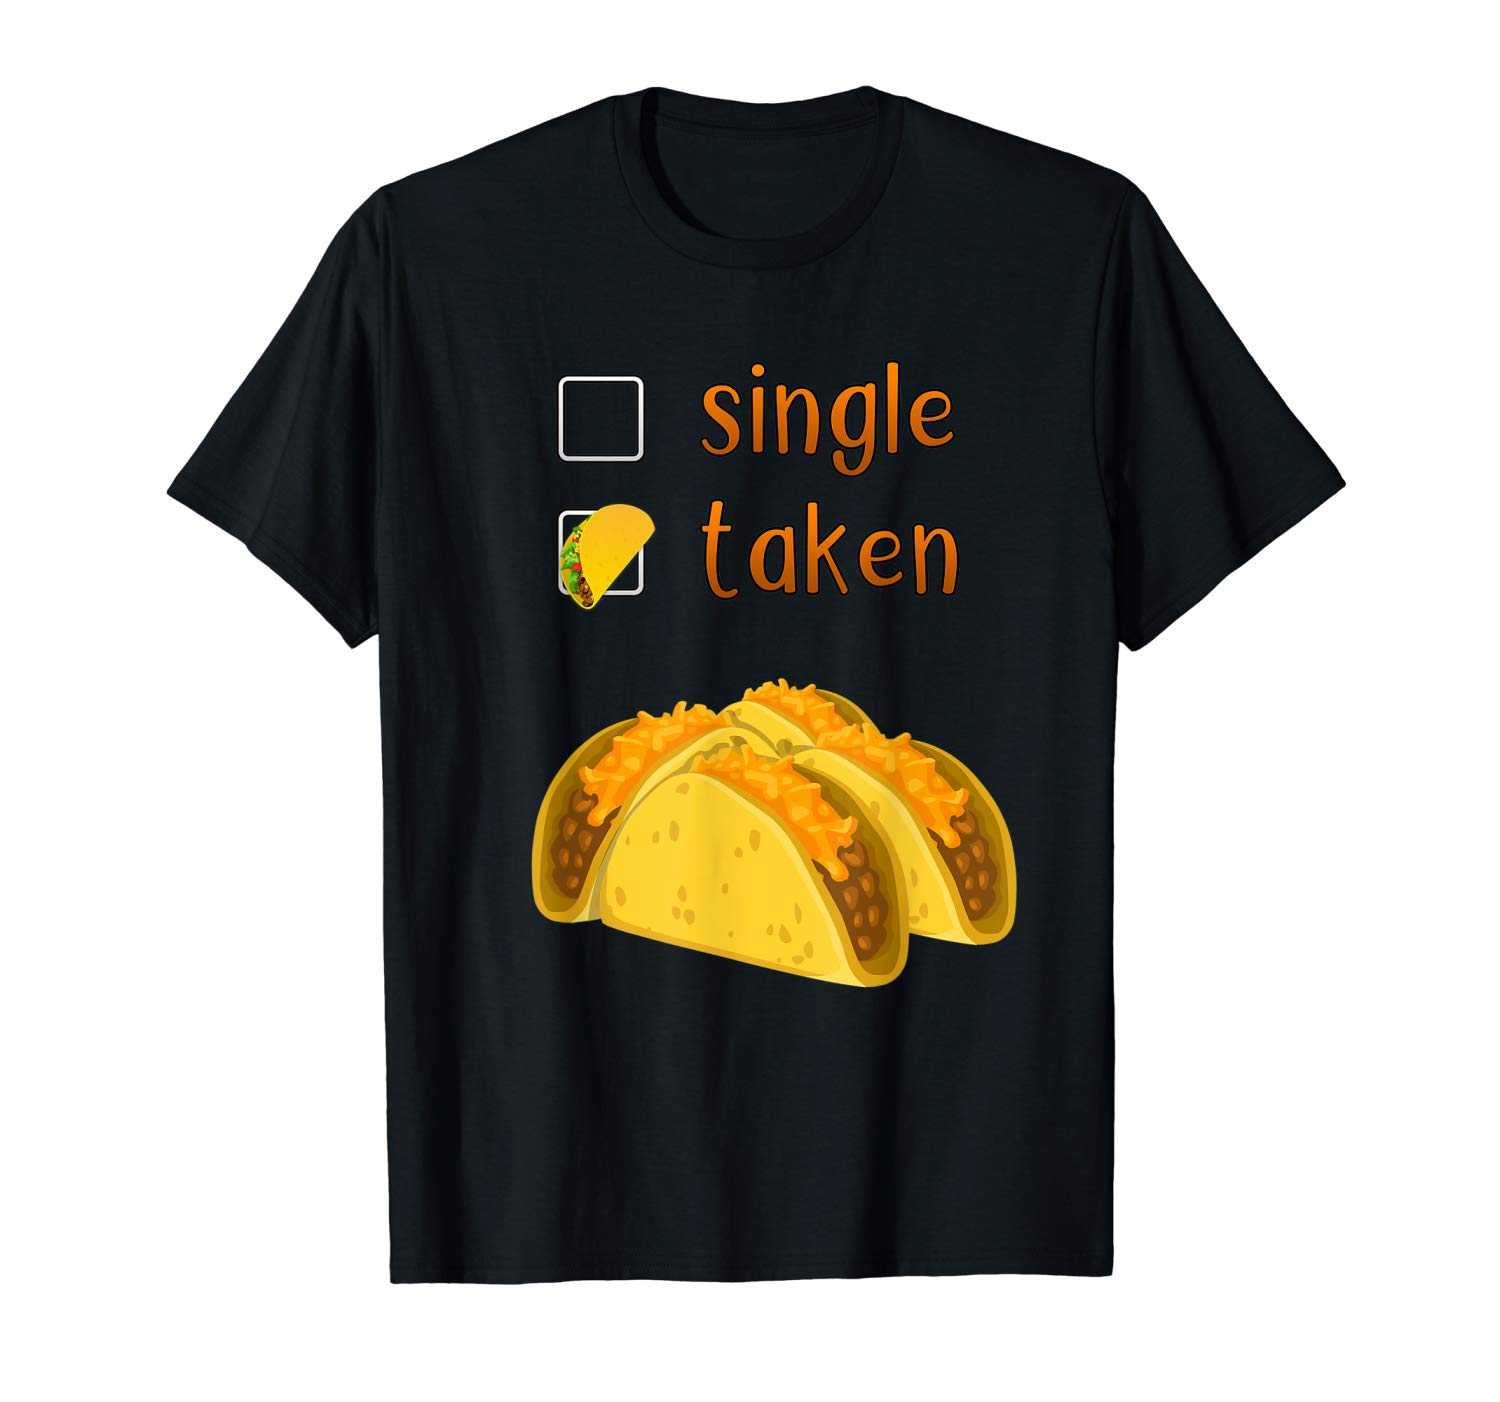 Valentines Day Gift For Her Chicos Tacos Hot Sauces T Shirt